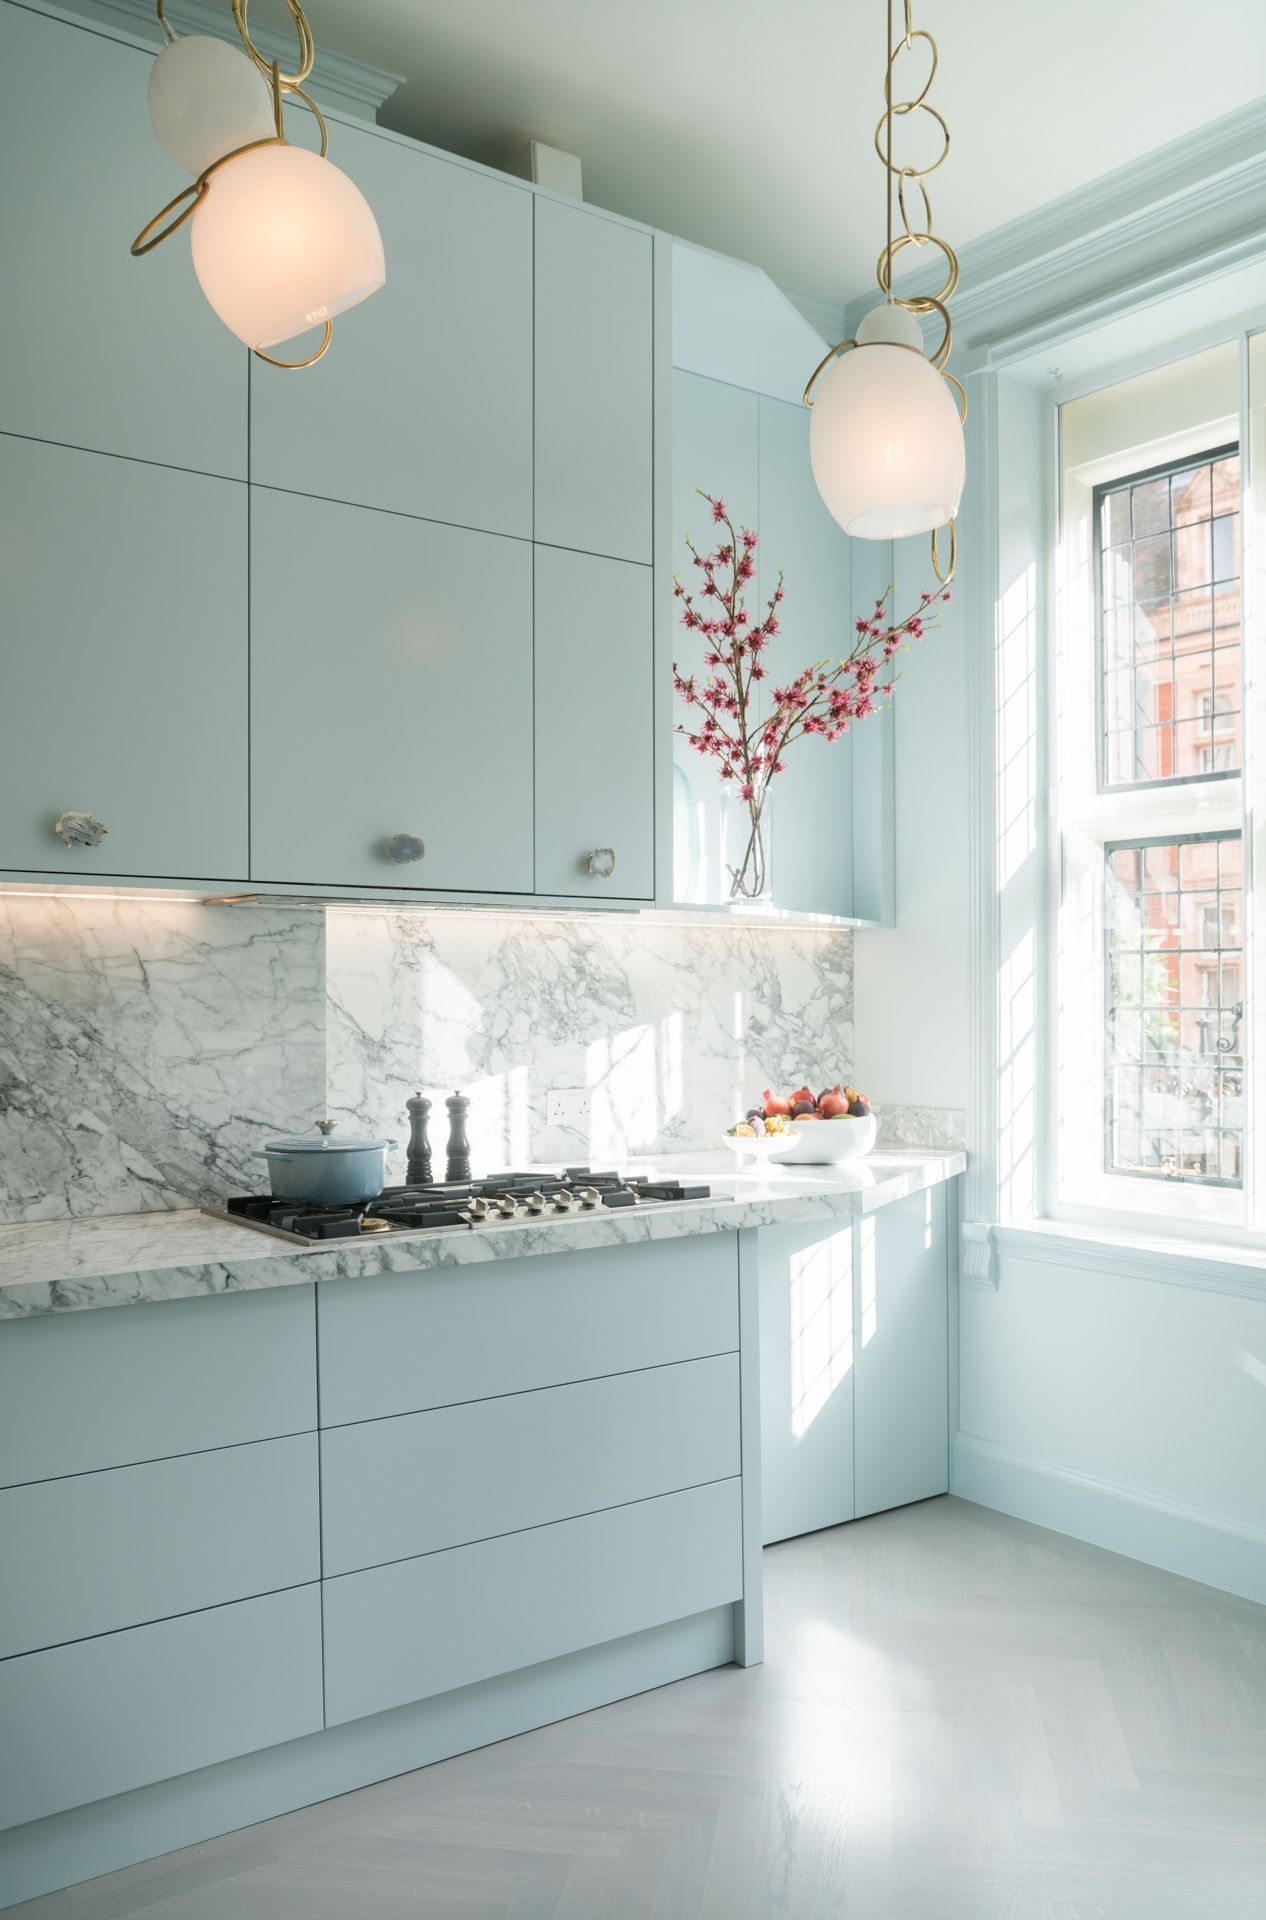 Amelia Carter Interiors | Designing individual and elegant spaces for an international clientele